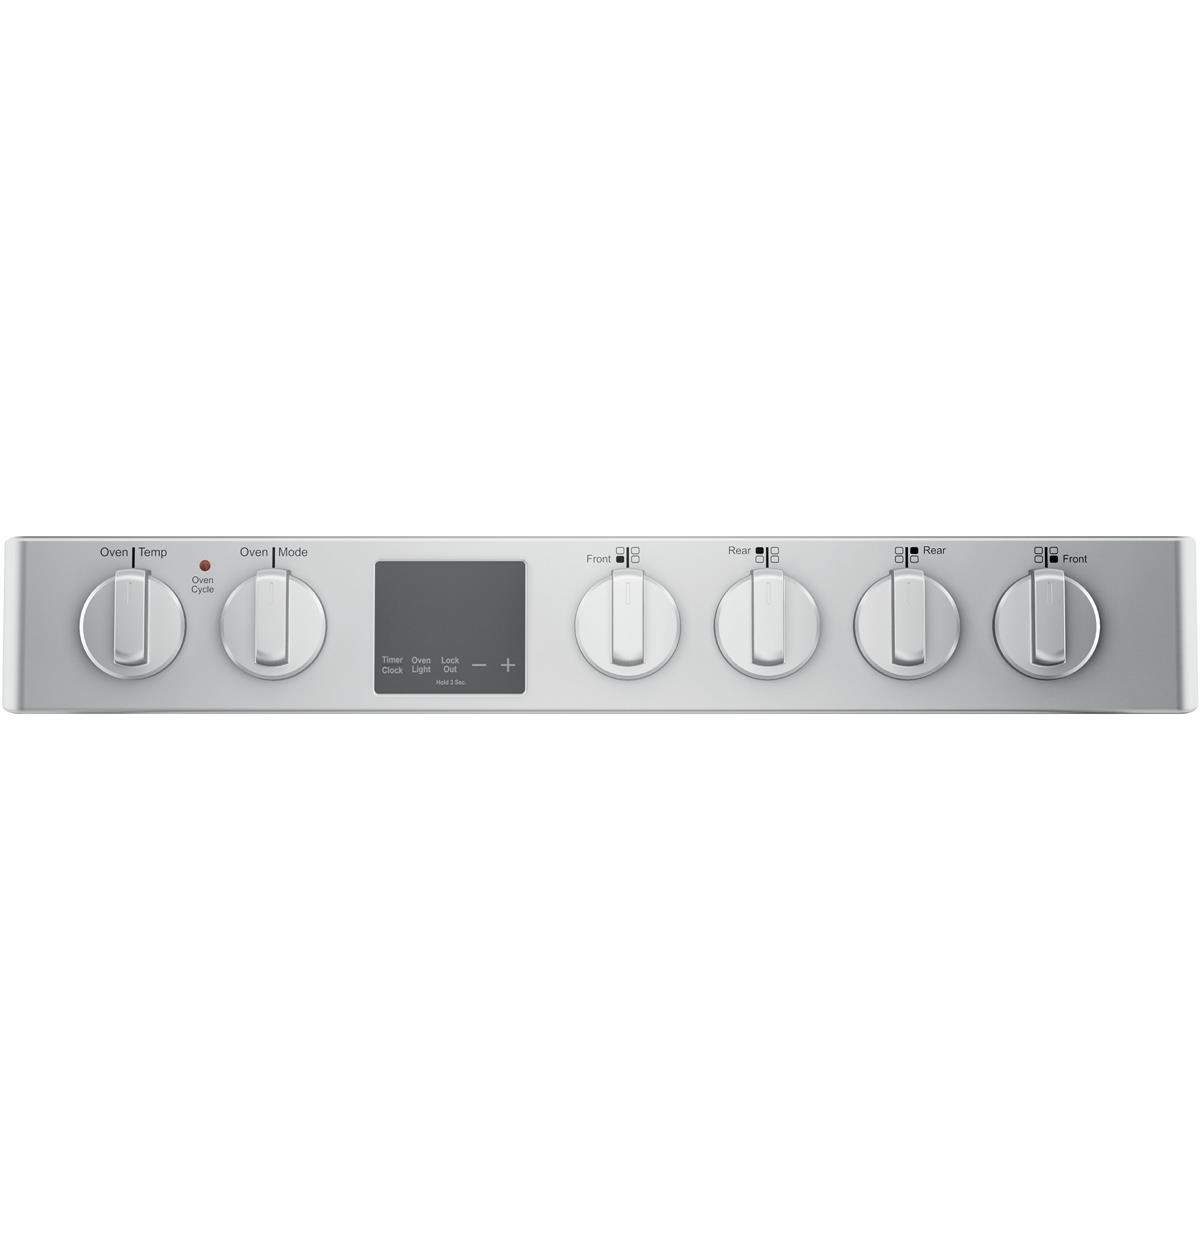 Stainless Free-Standing Ranges QGAS740RMSS Control Panel